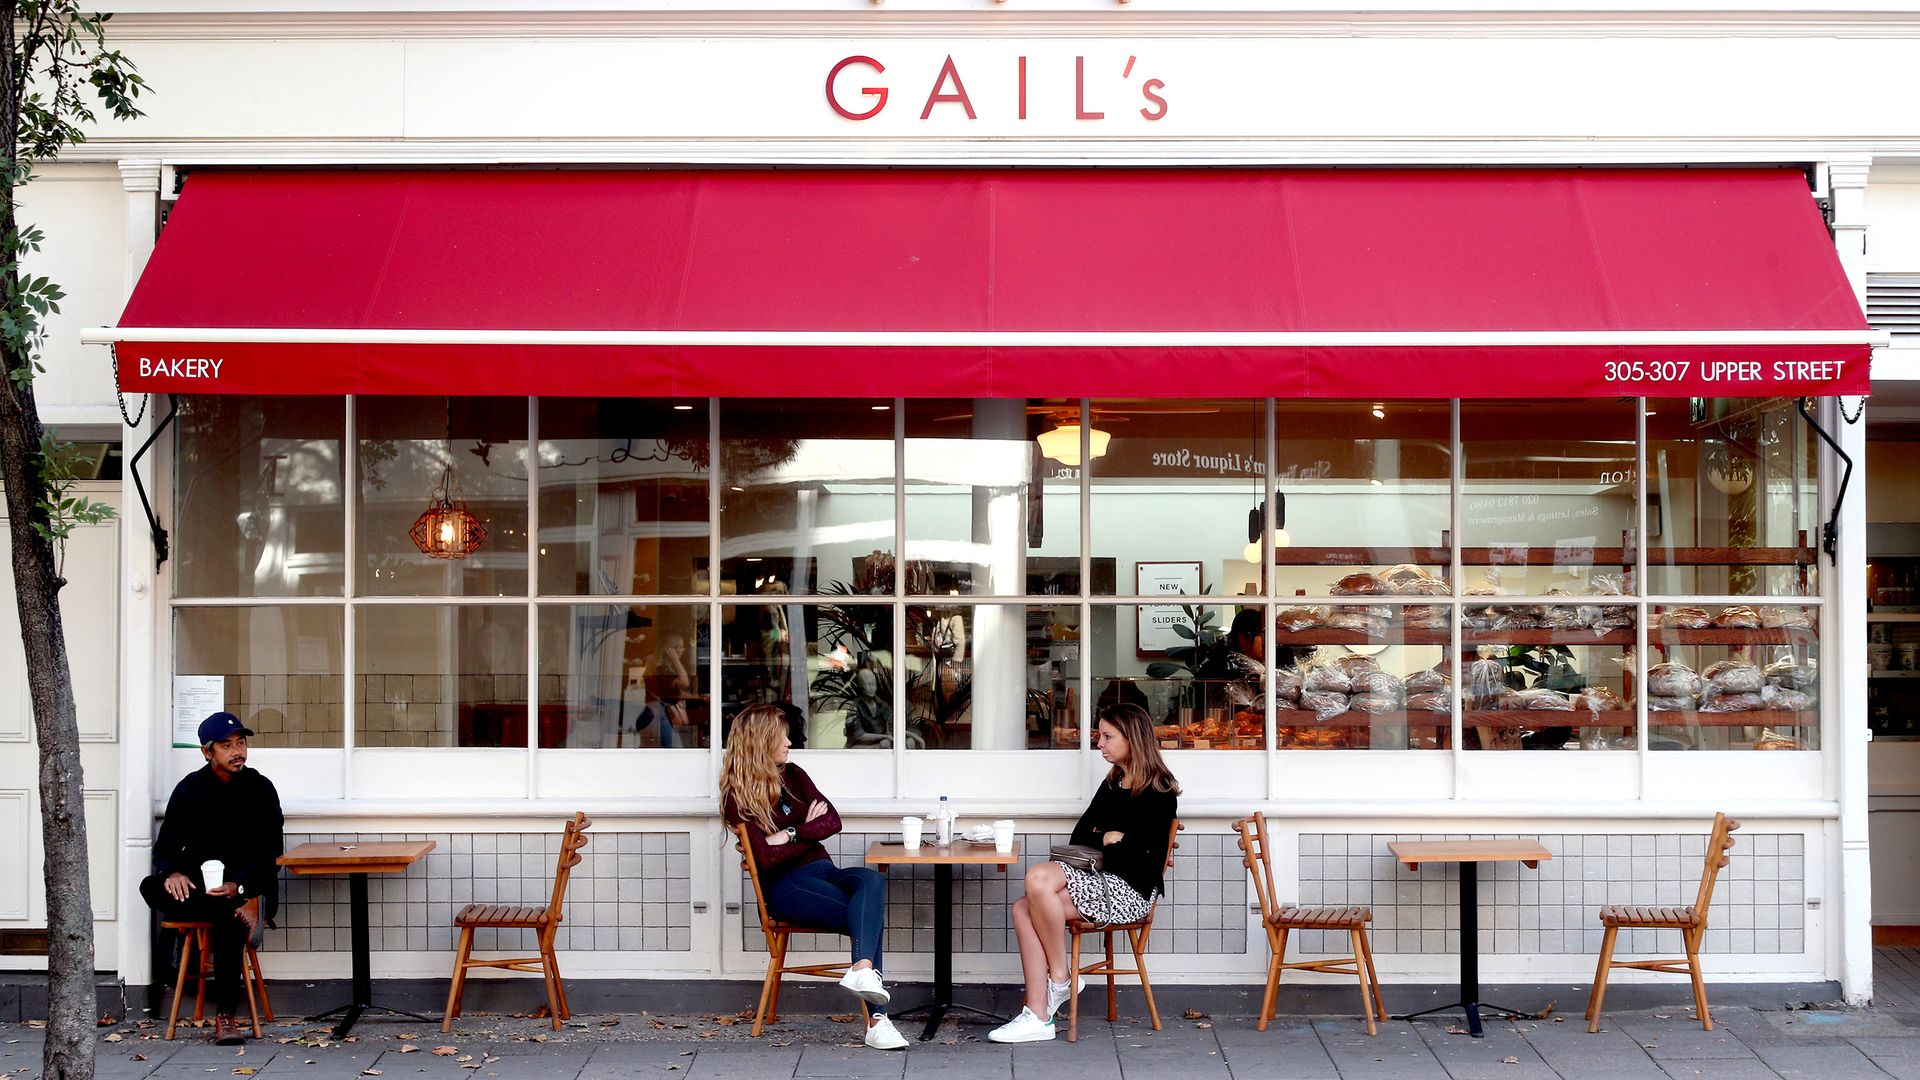 Customers observe social distancing as they sit outside a branch of Gail's bakery. - Credit: PA